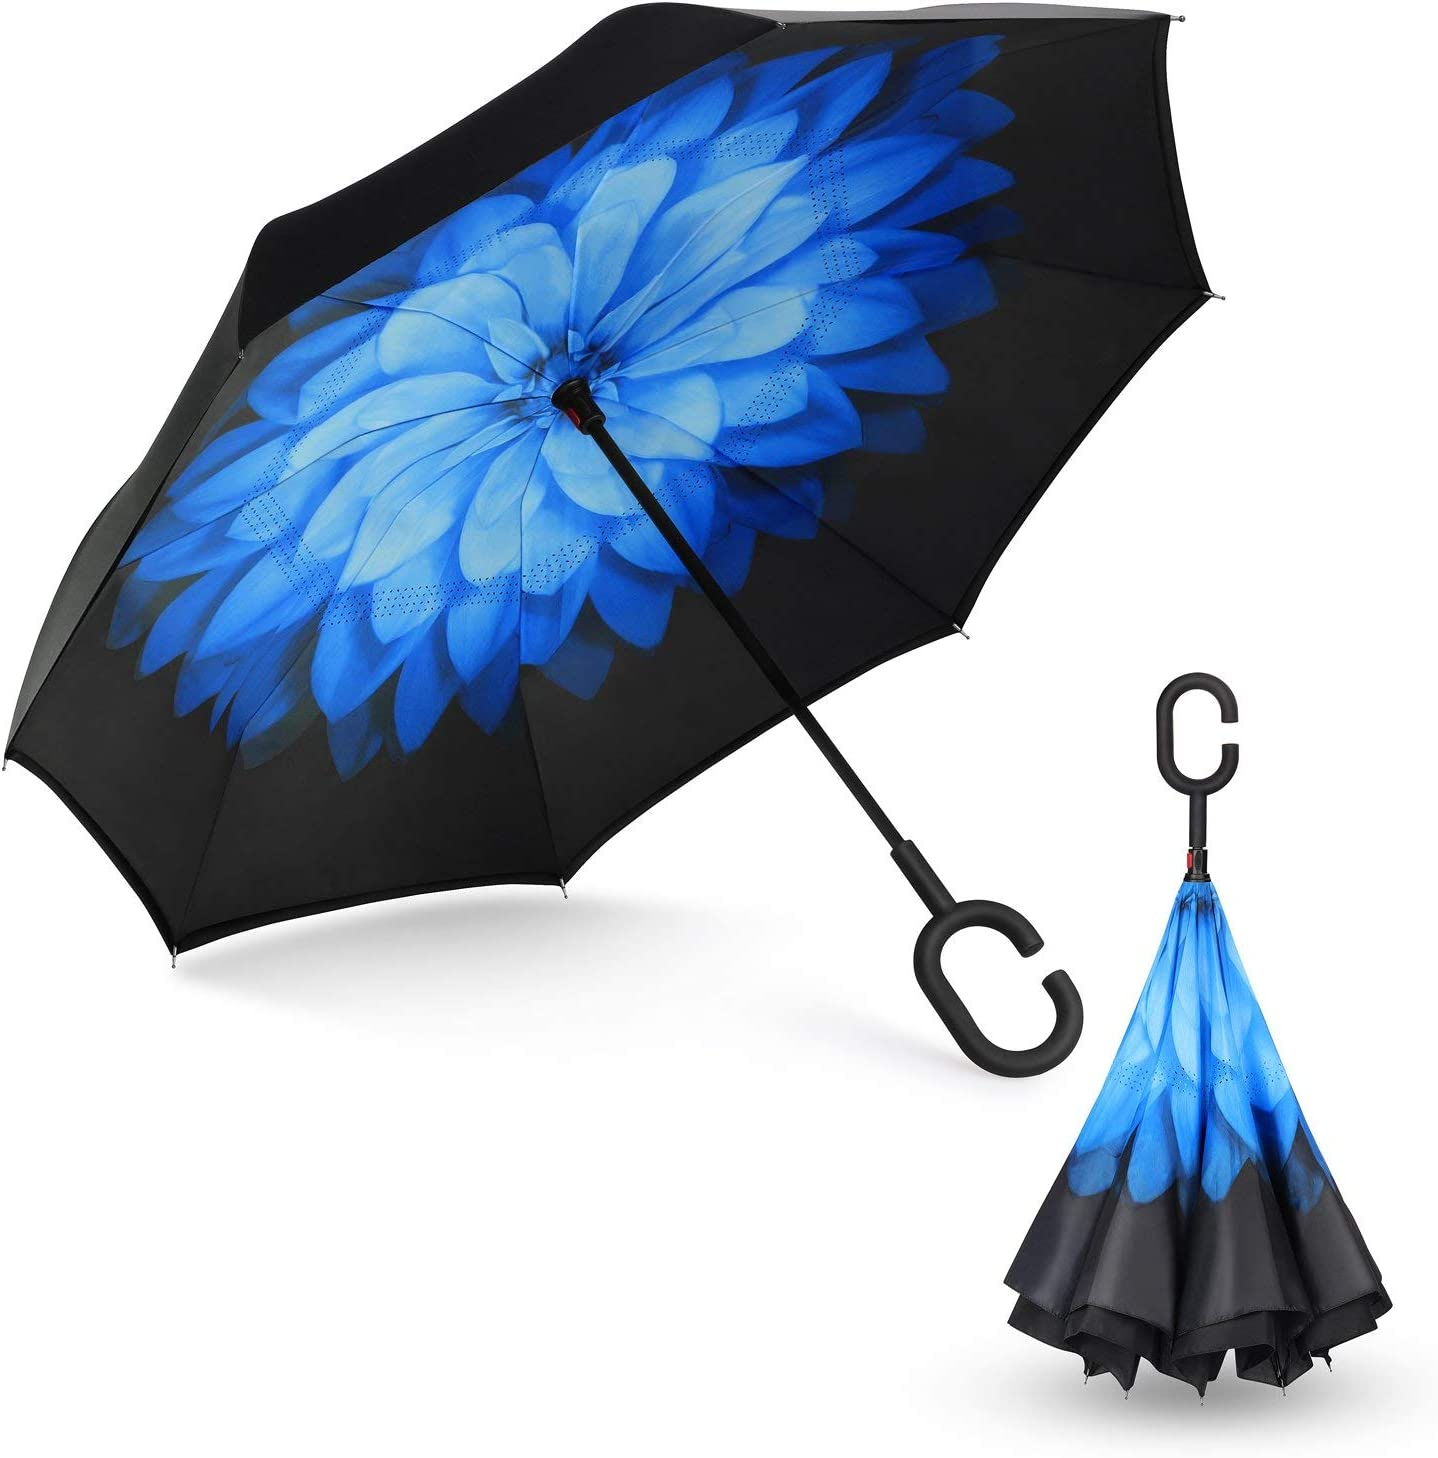 Reverse Folding Inverted Umbrella Double Layer Wind Proof UV Proof Inside Out Car Self Standing Umbrella Blue Flower